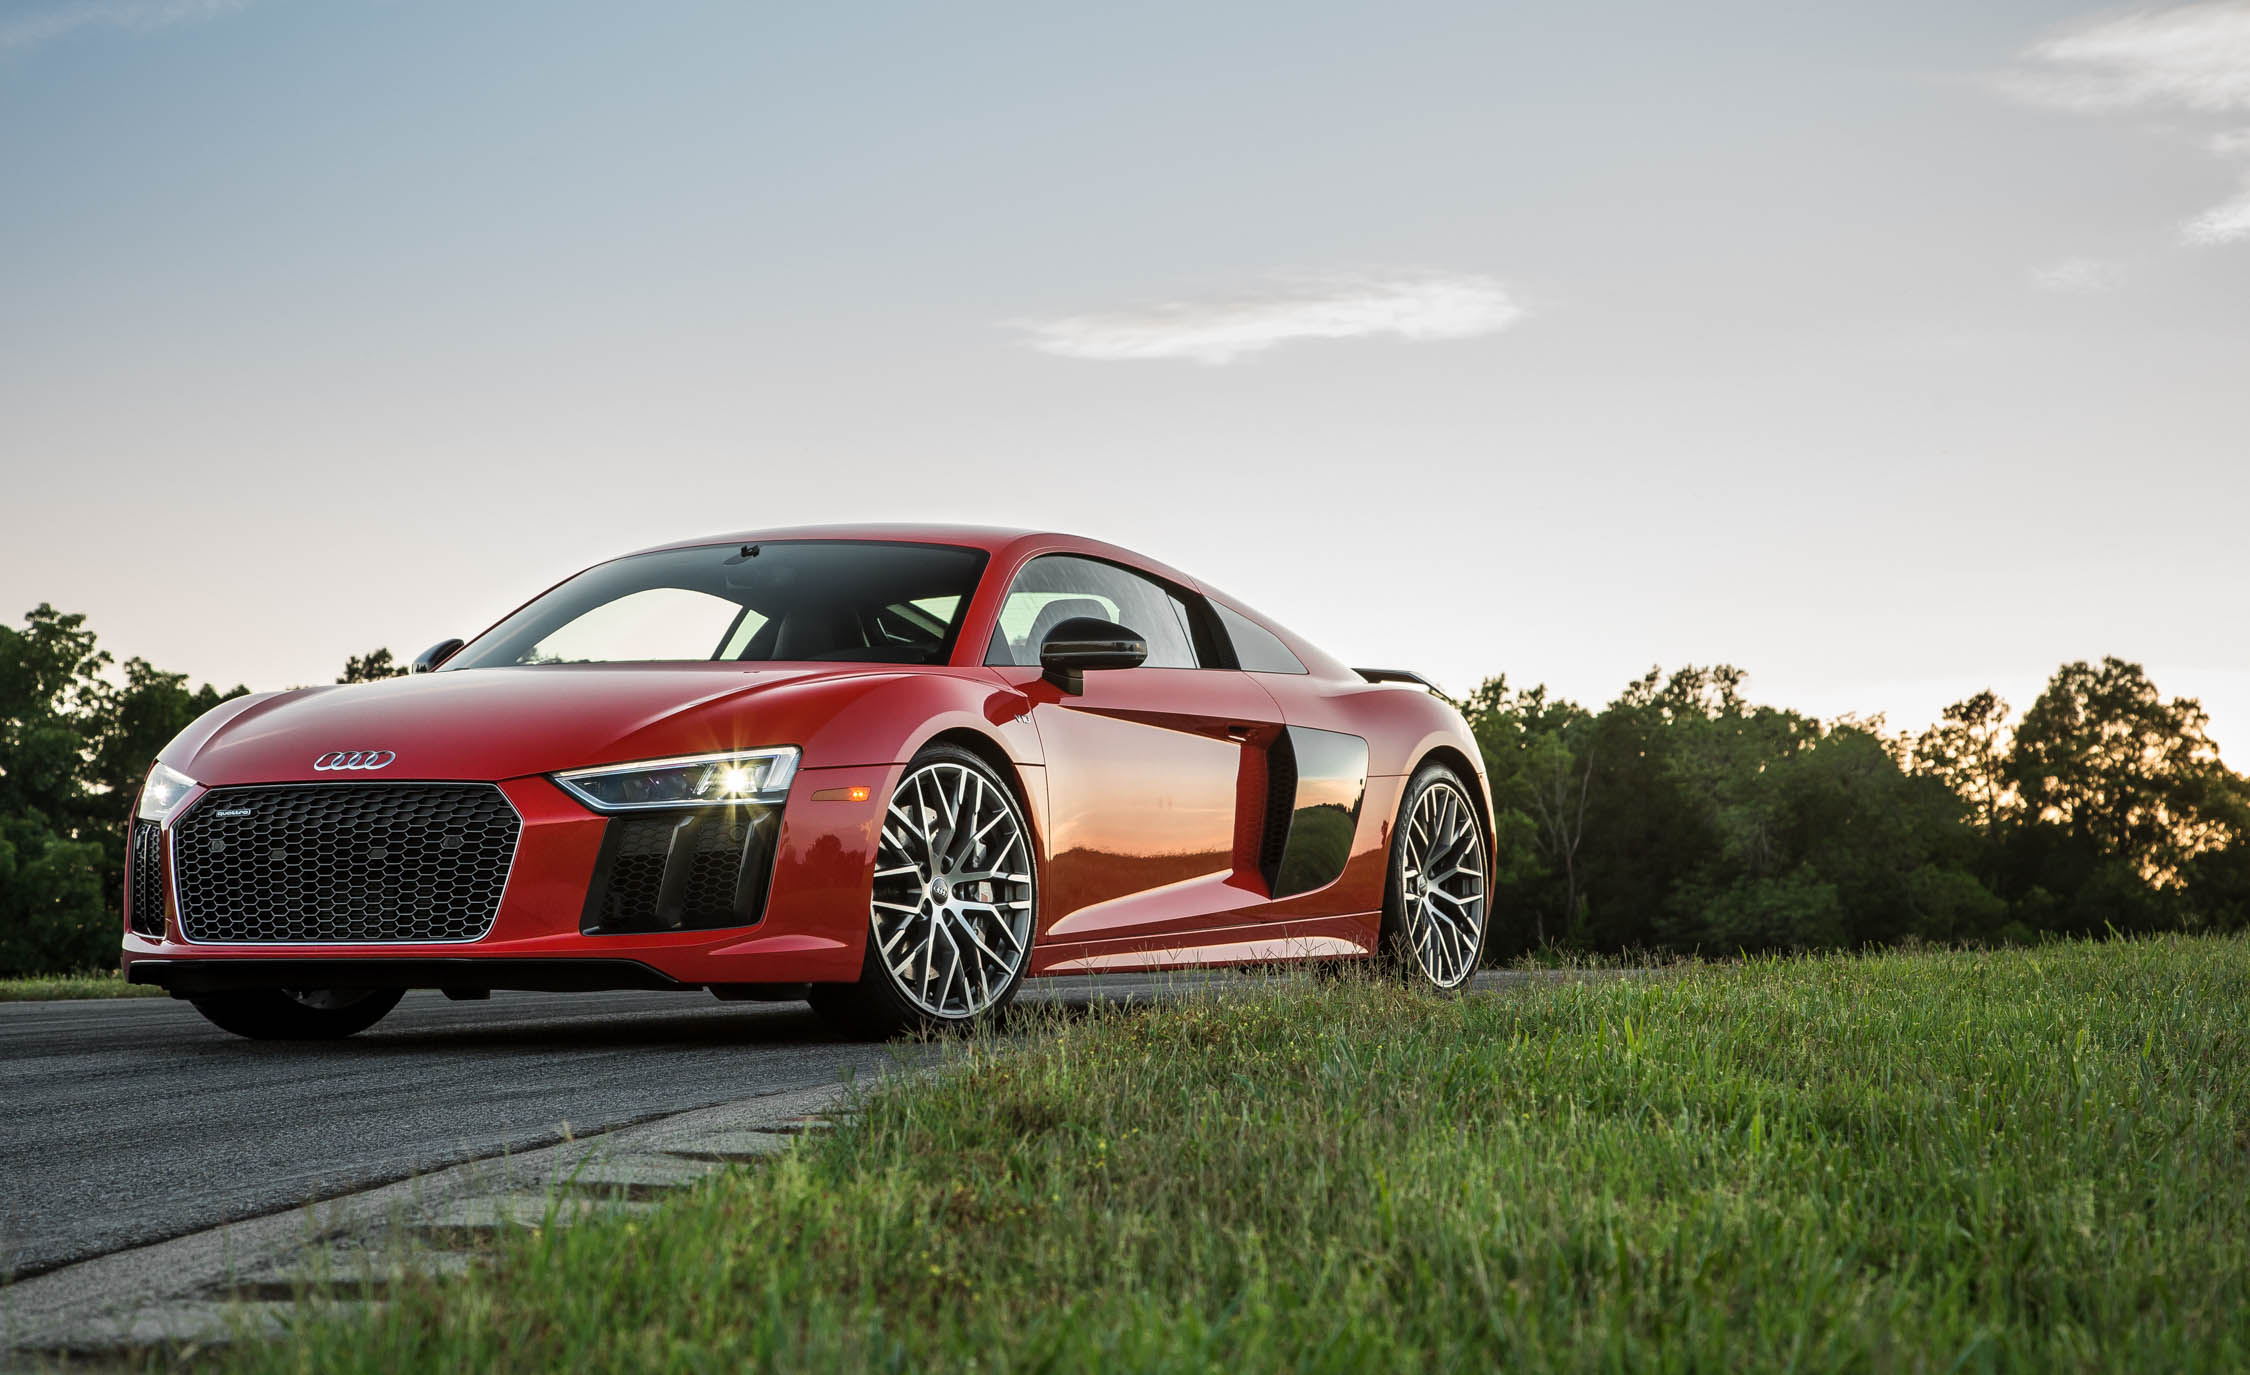 2017 Audi R8 V 10 Plus (Photo 5 of 19)